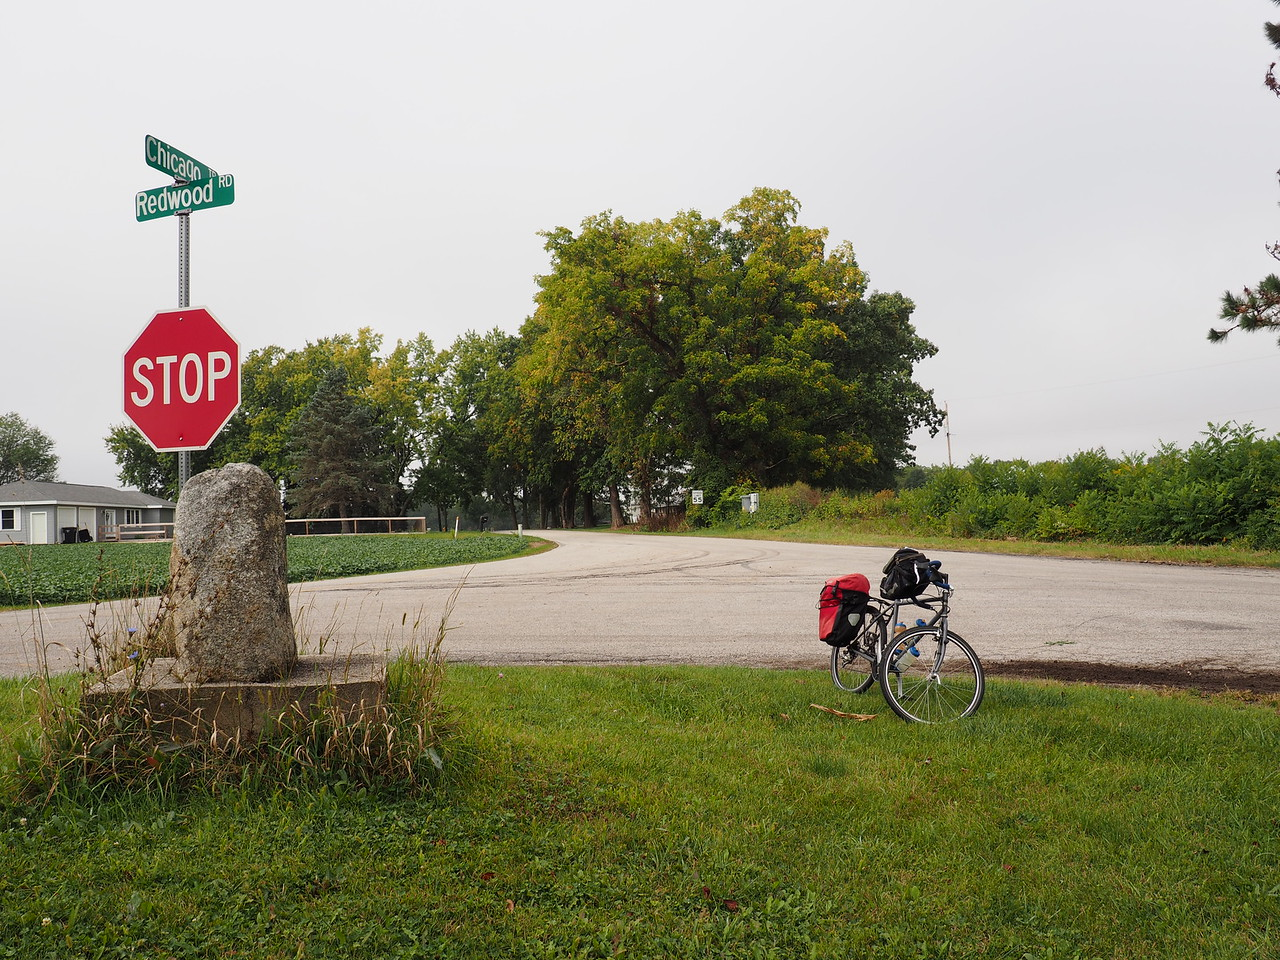 Indiana/Michigan border marker on the old Chicago Road